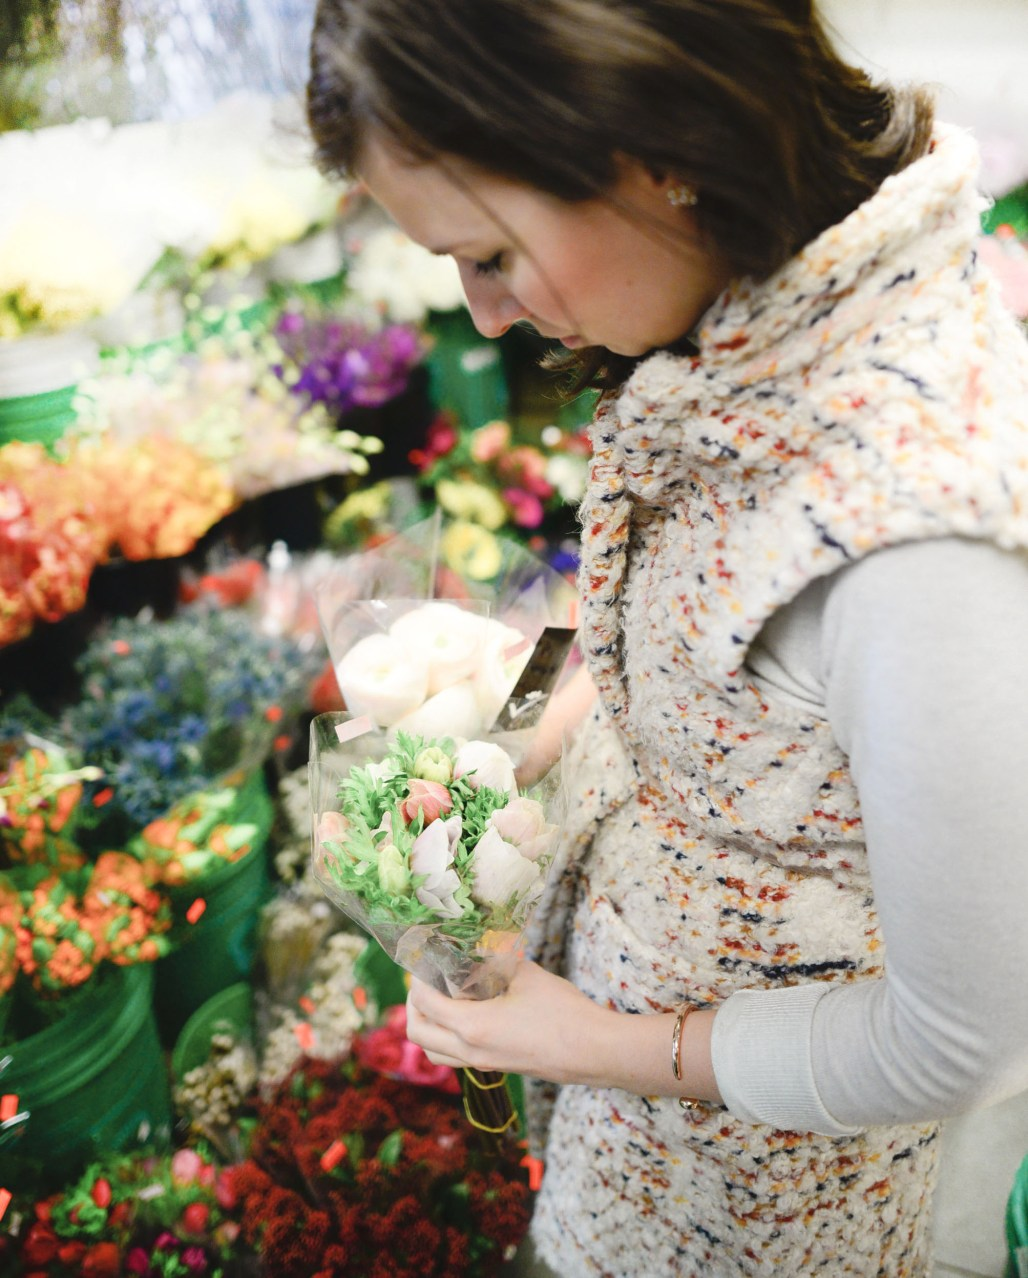 Yangs-flower-market-toronto-2